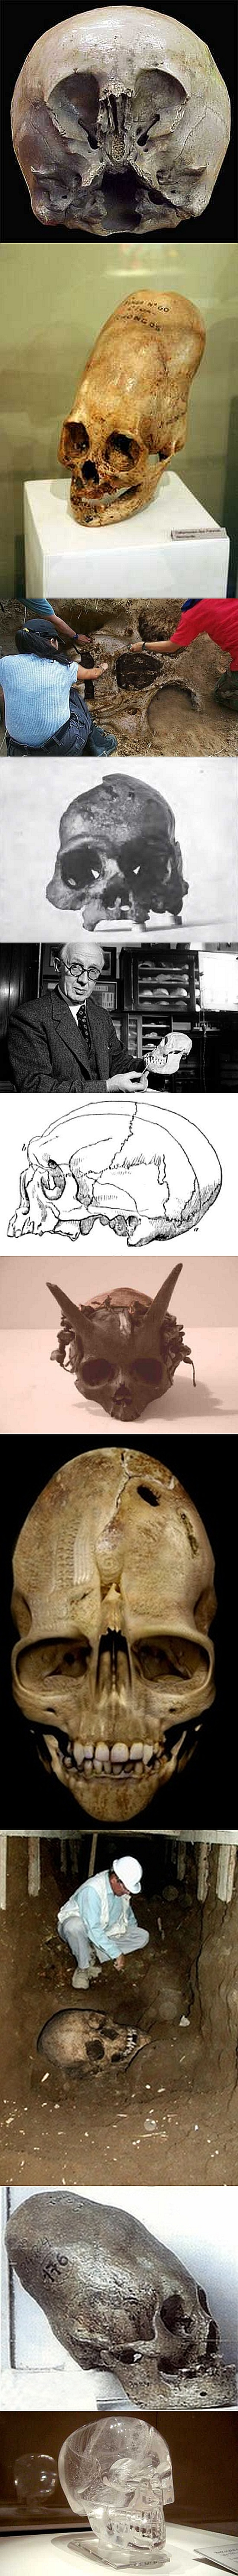 "Fake - Including Starchild, Crystal Skulls, Andover Vampire, Horned Skulls, Misshapen(elongated) Skulls, Piltdown Man, Calveras Skull, Batavus Genuinus, Giant Skulls and variations of the above. - There is no proof of any and many have been ""proved false"". Others are unverifyable and claims are unproven and based on hearsay and  tricks of photography. Many have mysteriously disappeared or the owners don't allow testing. A link is included to discussion of many of the fakes......"